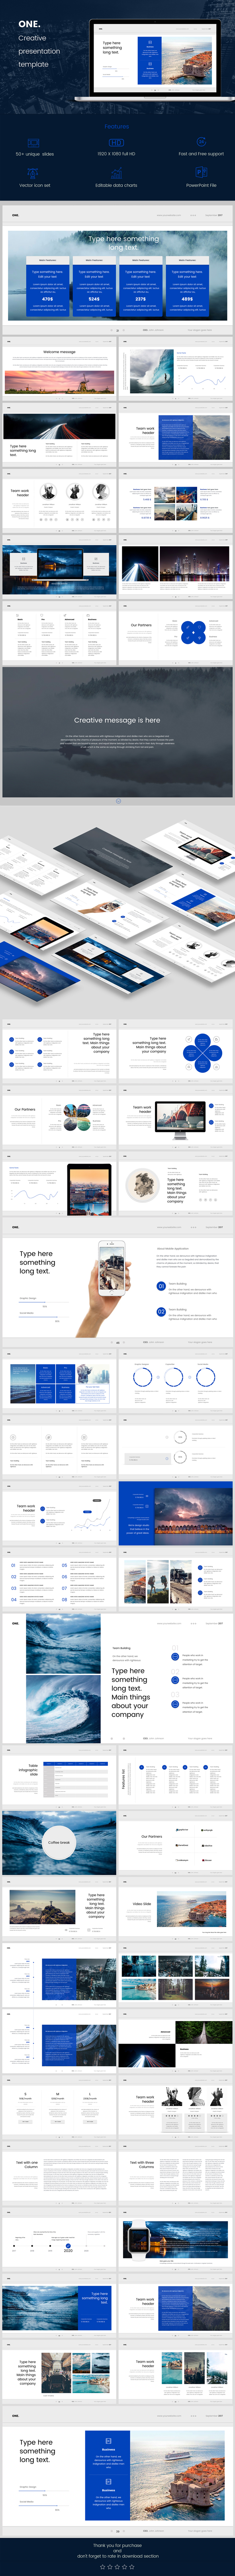 One PowerPoint - PowerPoint Templates Presentation Templates